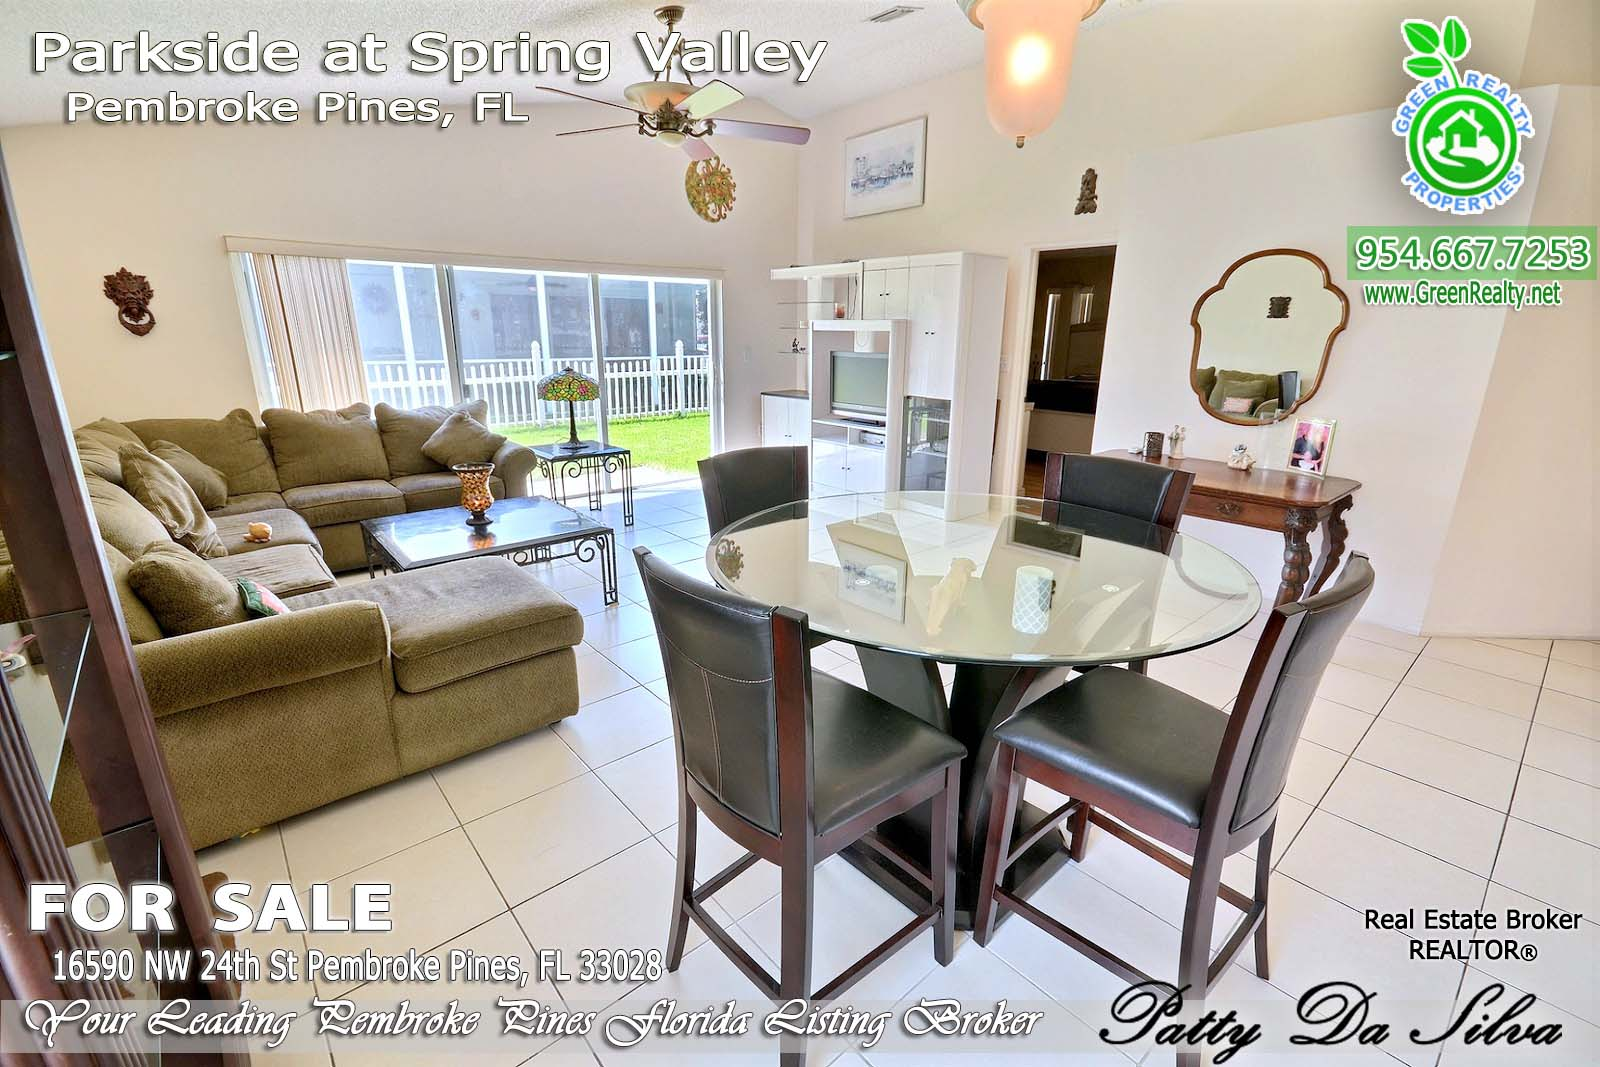 Parkside at Spring Valley Homes For Sale - Pembroke Pines Florida (10)